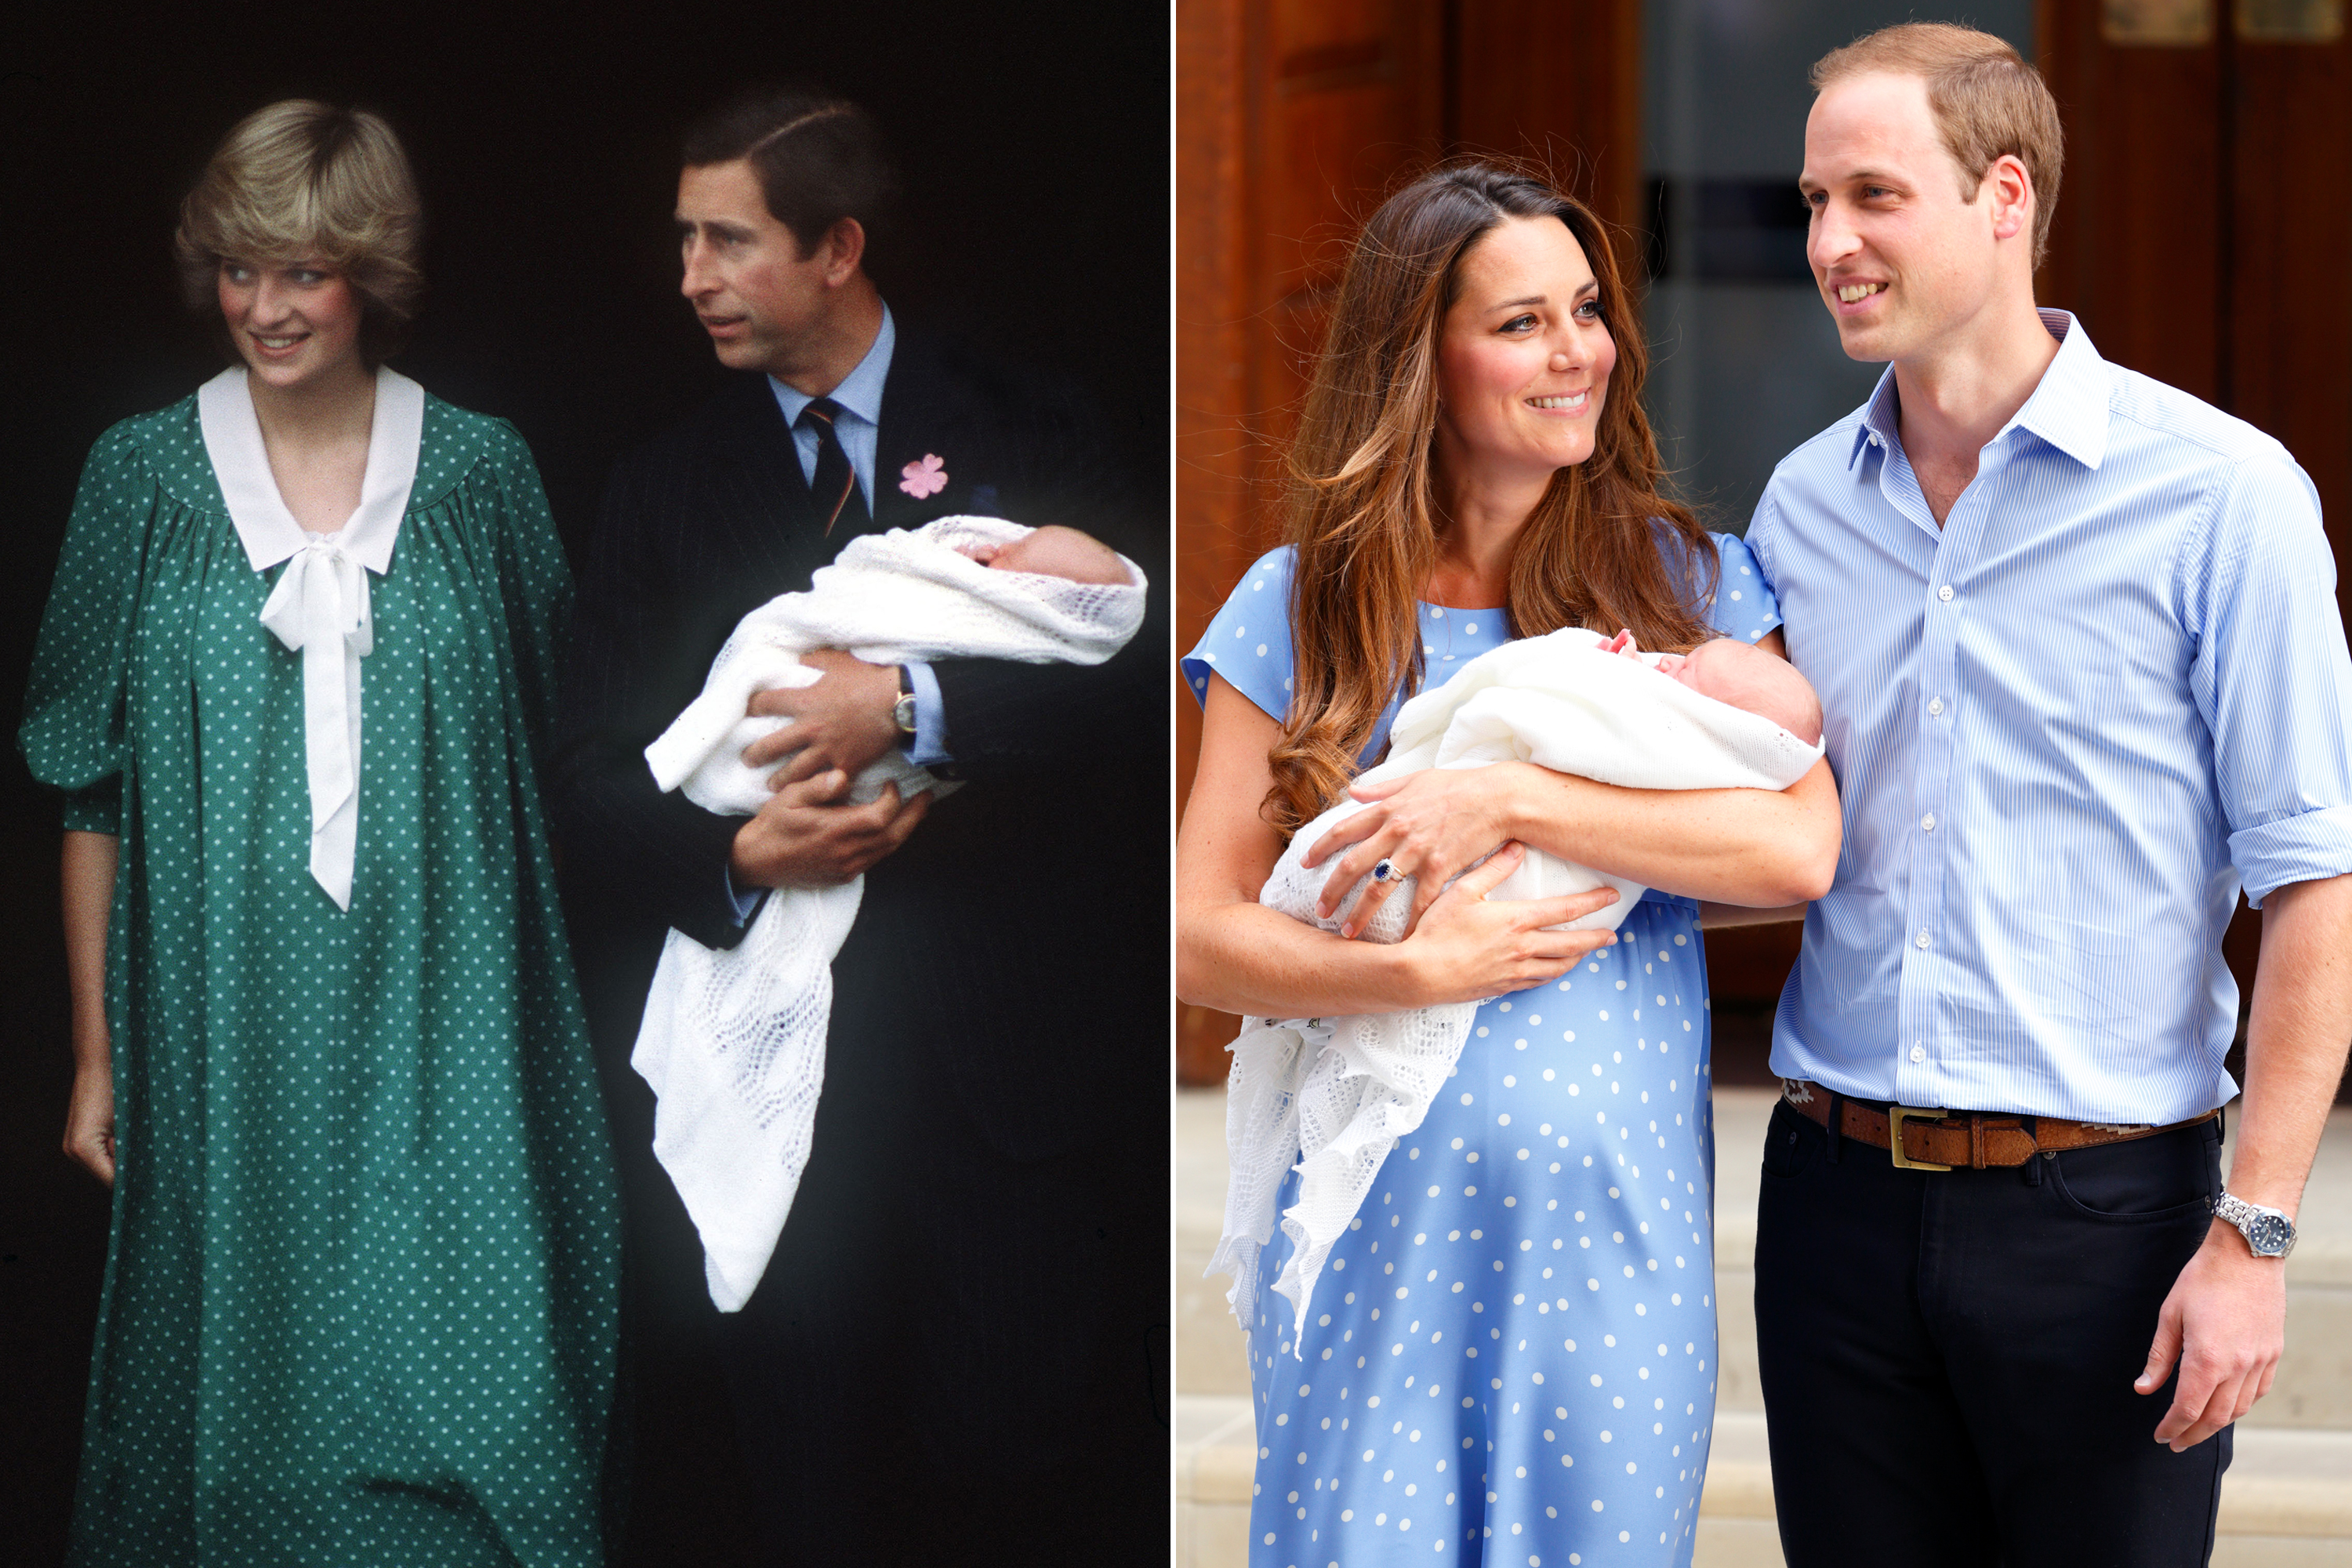 When it came to post-partum fashion to leave the hospital after giving birth, both Diana and Kate opted for comfortable but pretty polka dotted dresses.